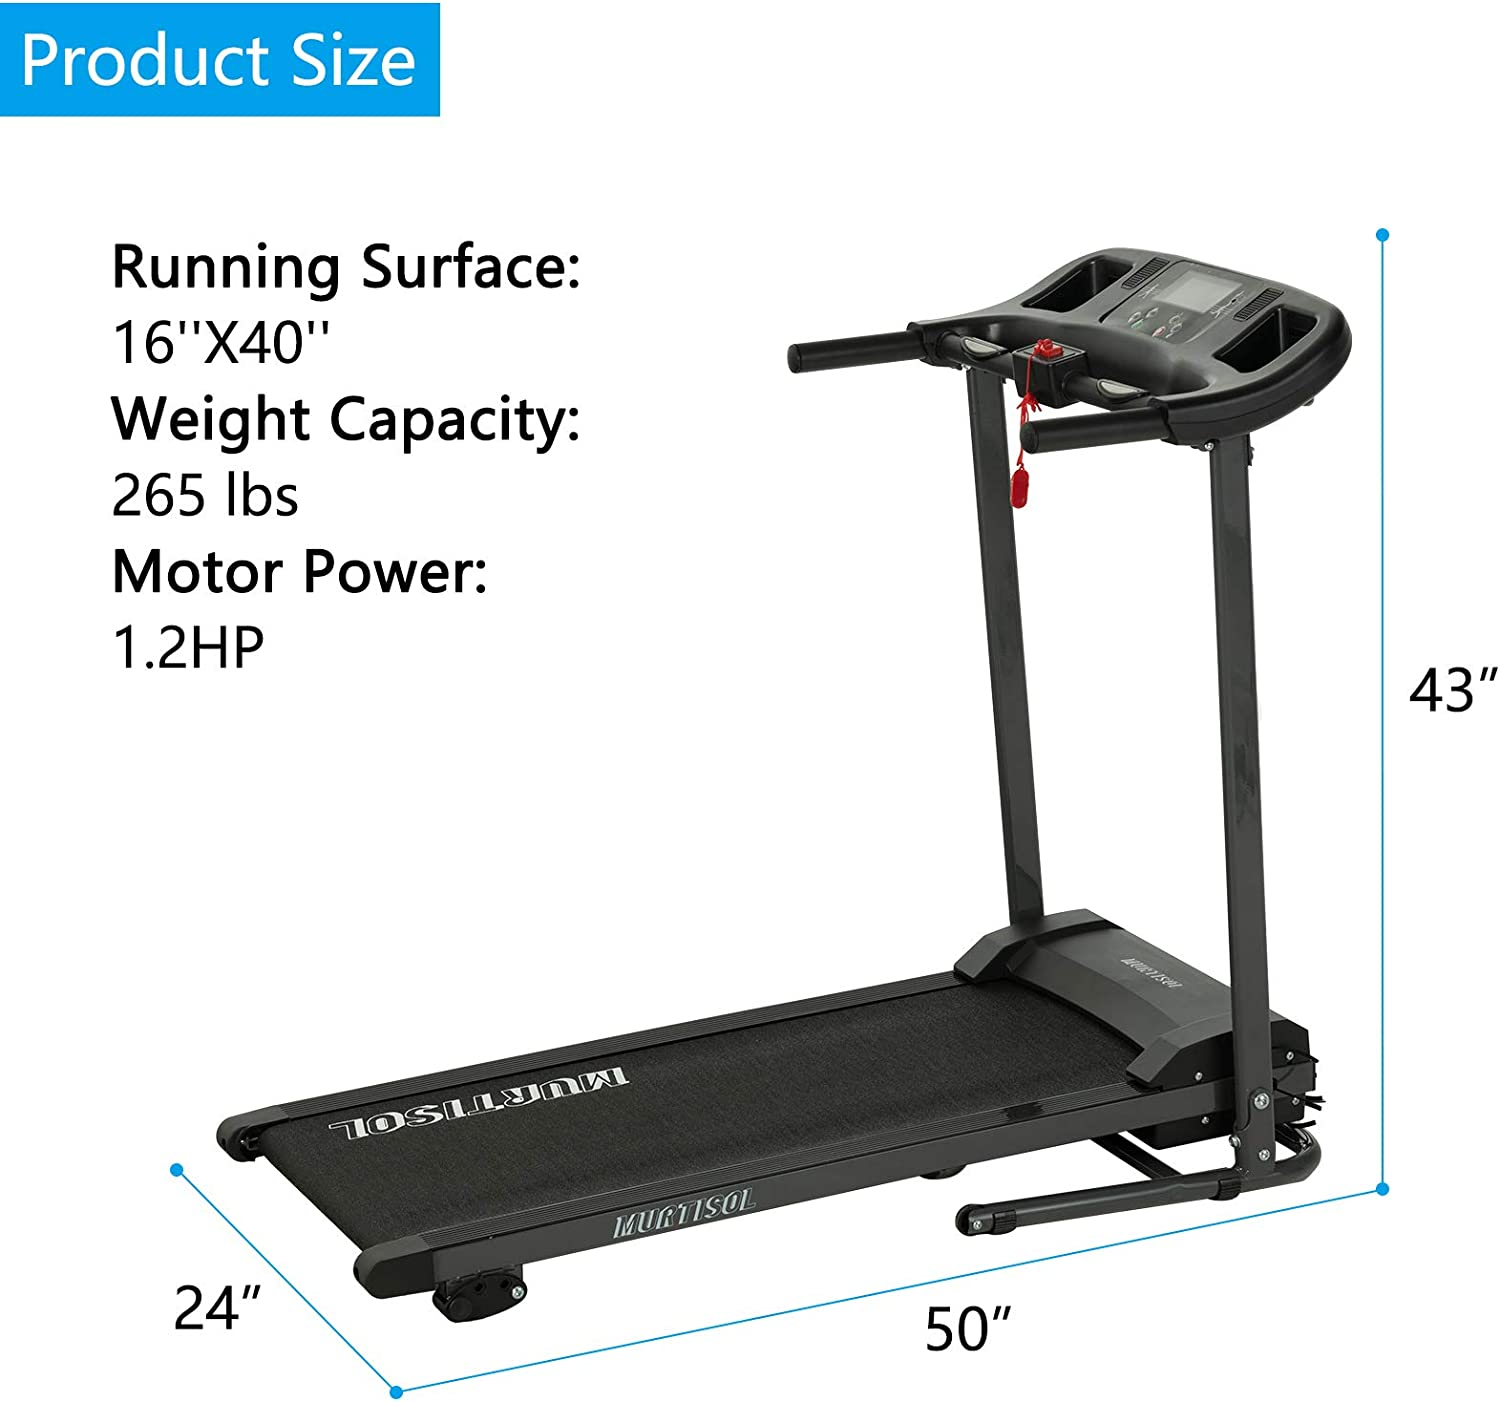 Murtisol Electric Treadmill Folding Running Machine with APP and Manual 3-Level Incline,Running Treadmill Machine for Home Fitness with Heart Rate Grips